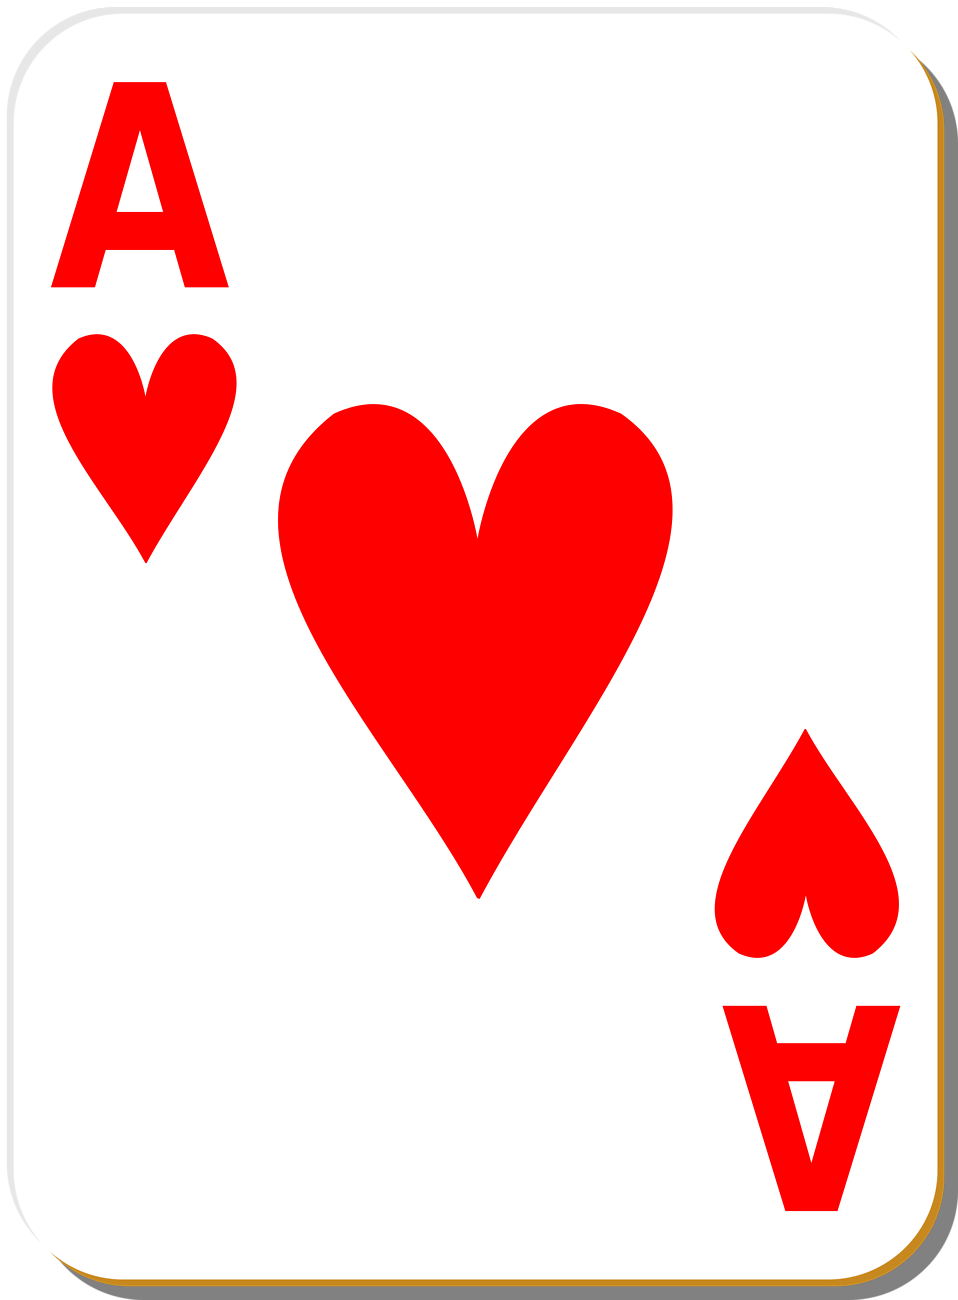 medium resolution of ace heart playing card clip art